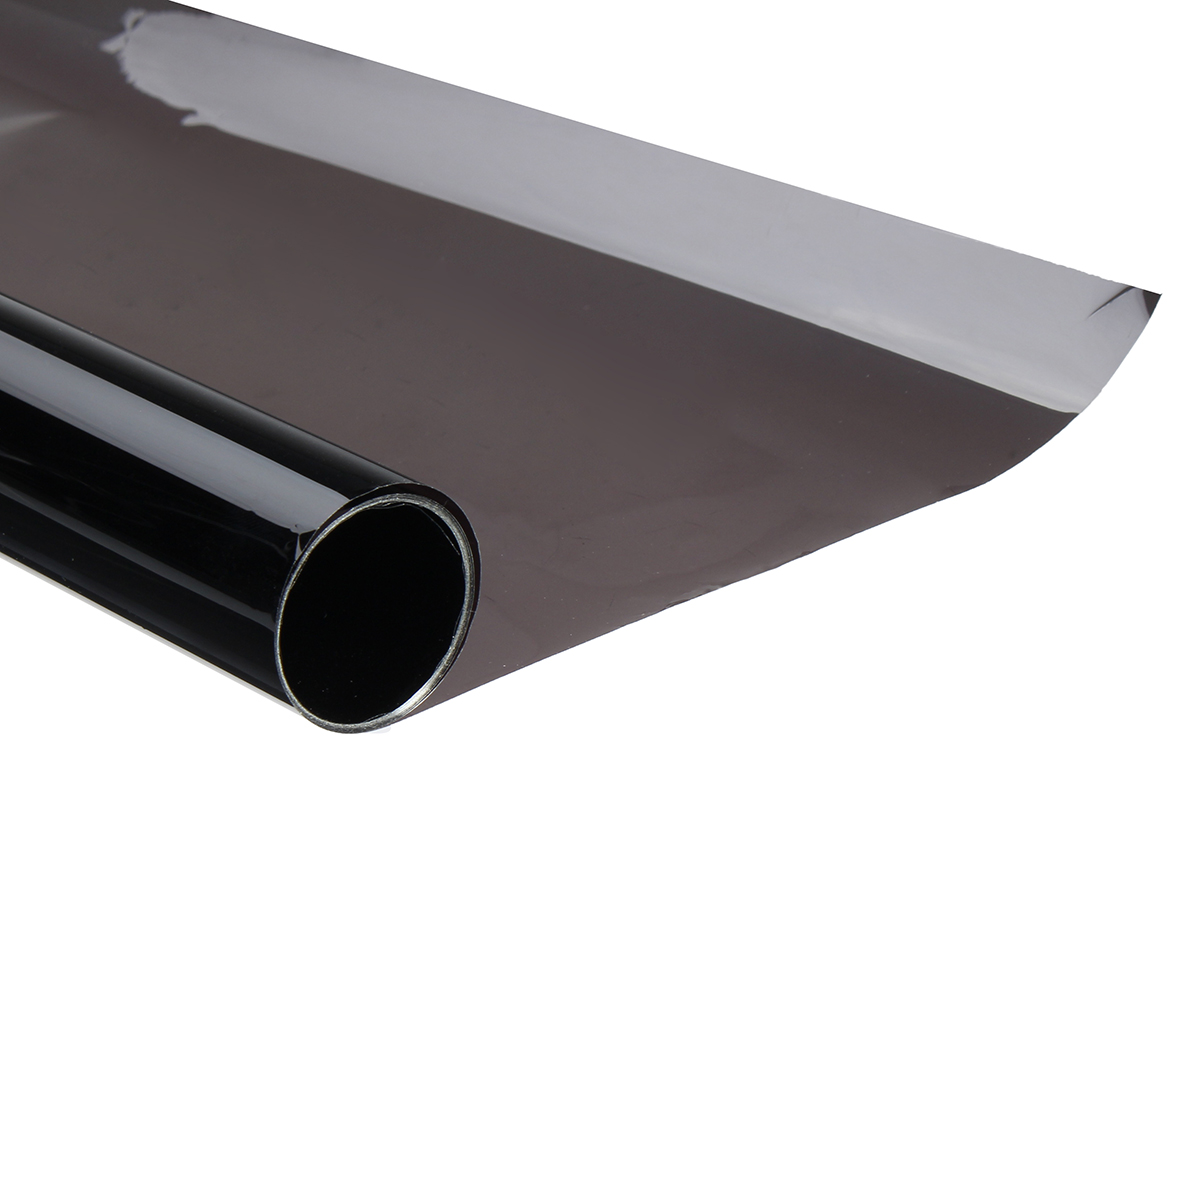 50cmx2m 15% VLT Black Car Glass Window Tint Shade Film Roll for Home Office Boat